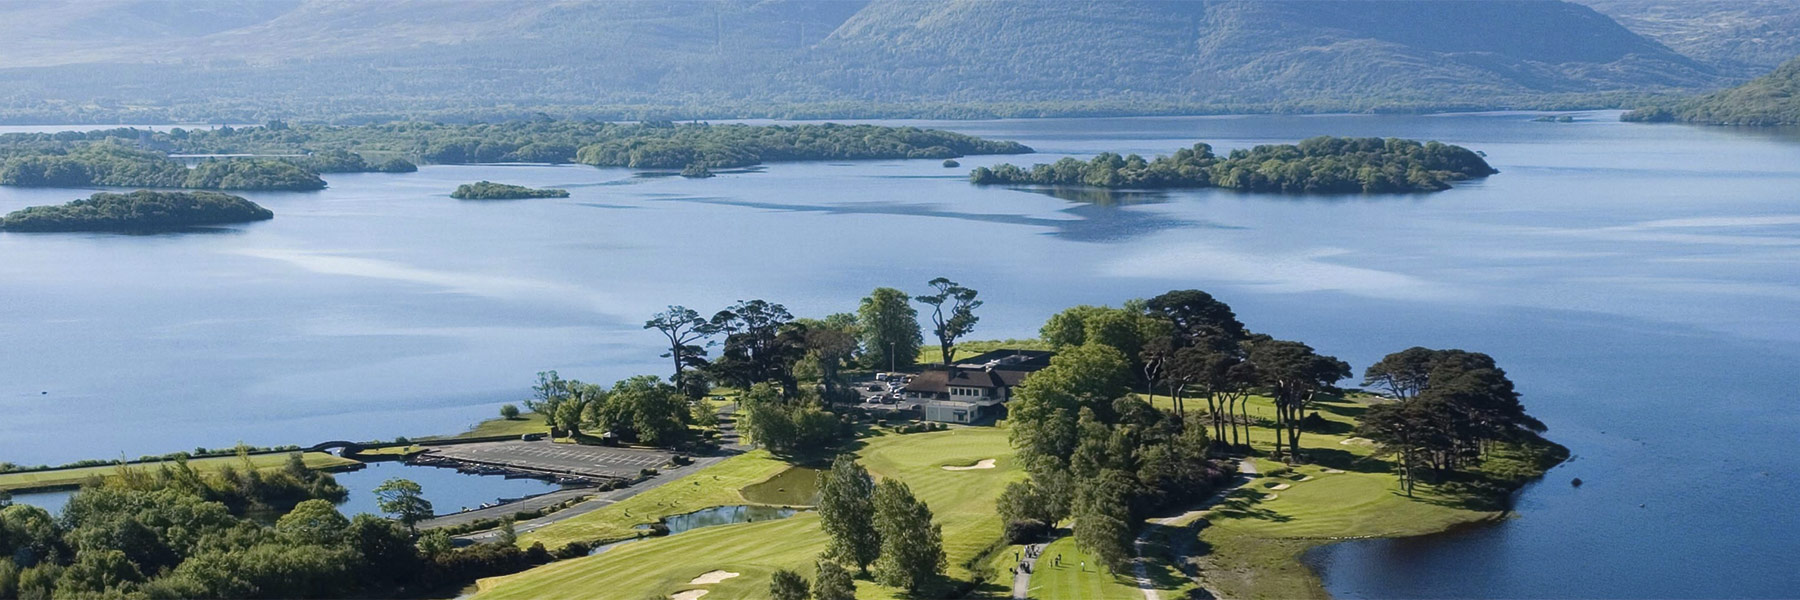 Killarney Golf Club